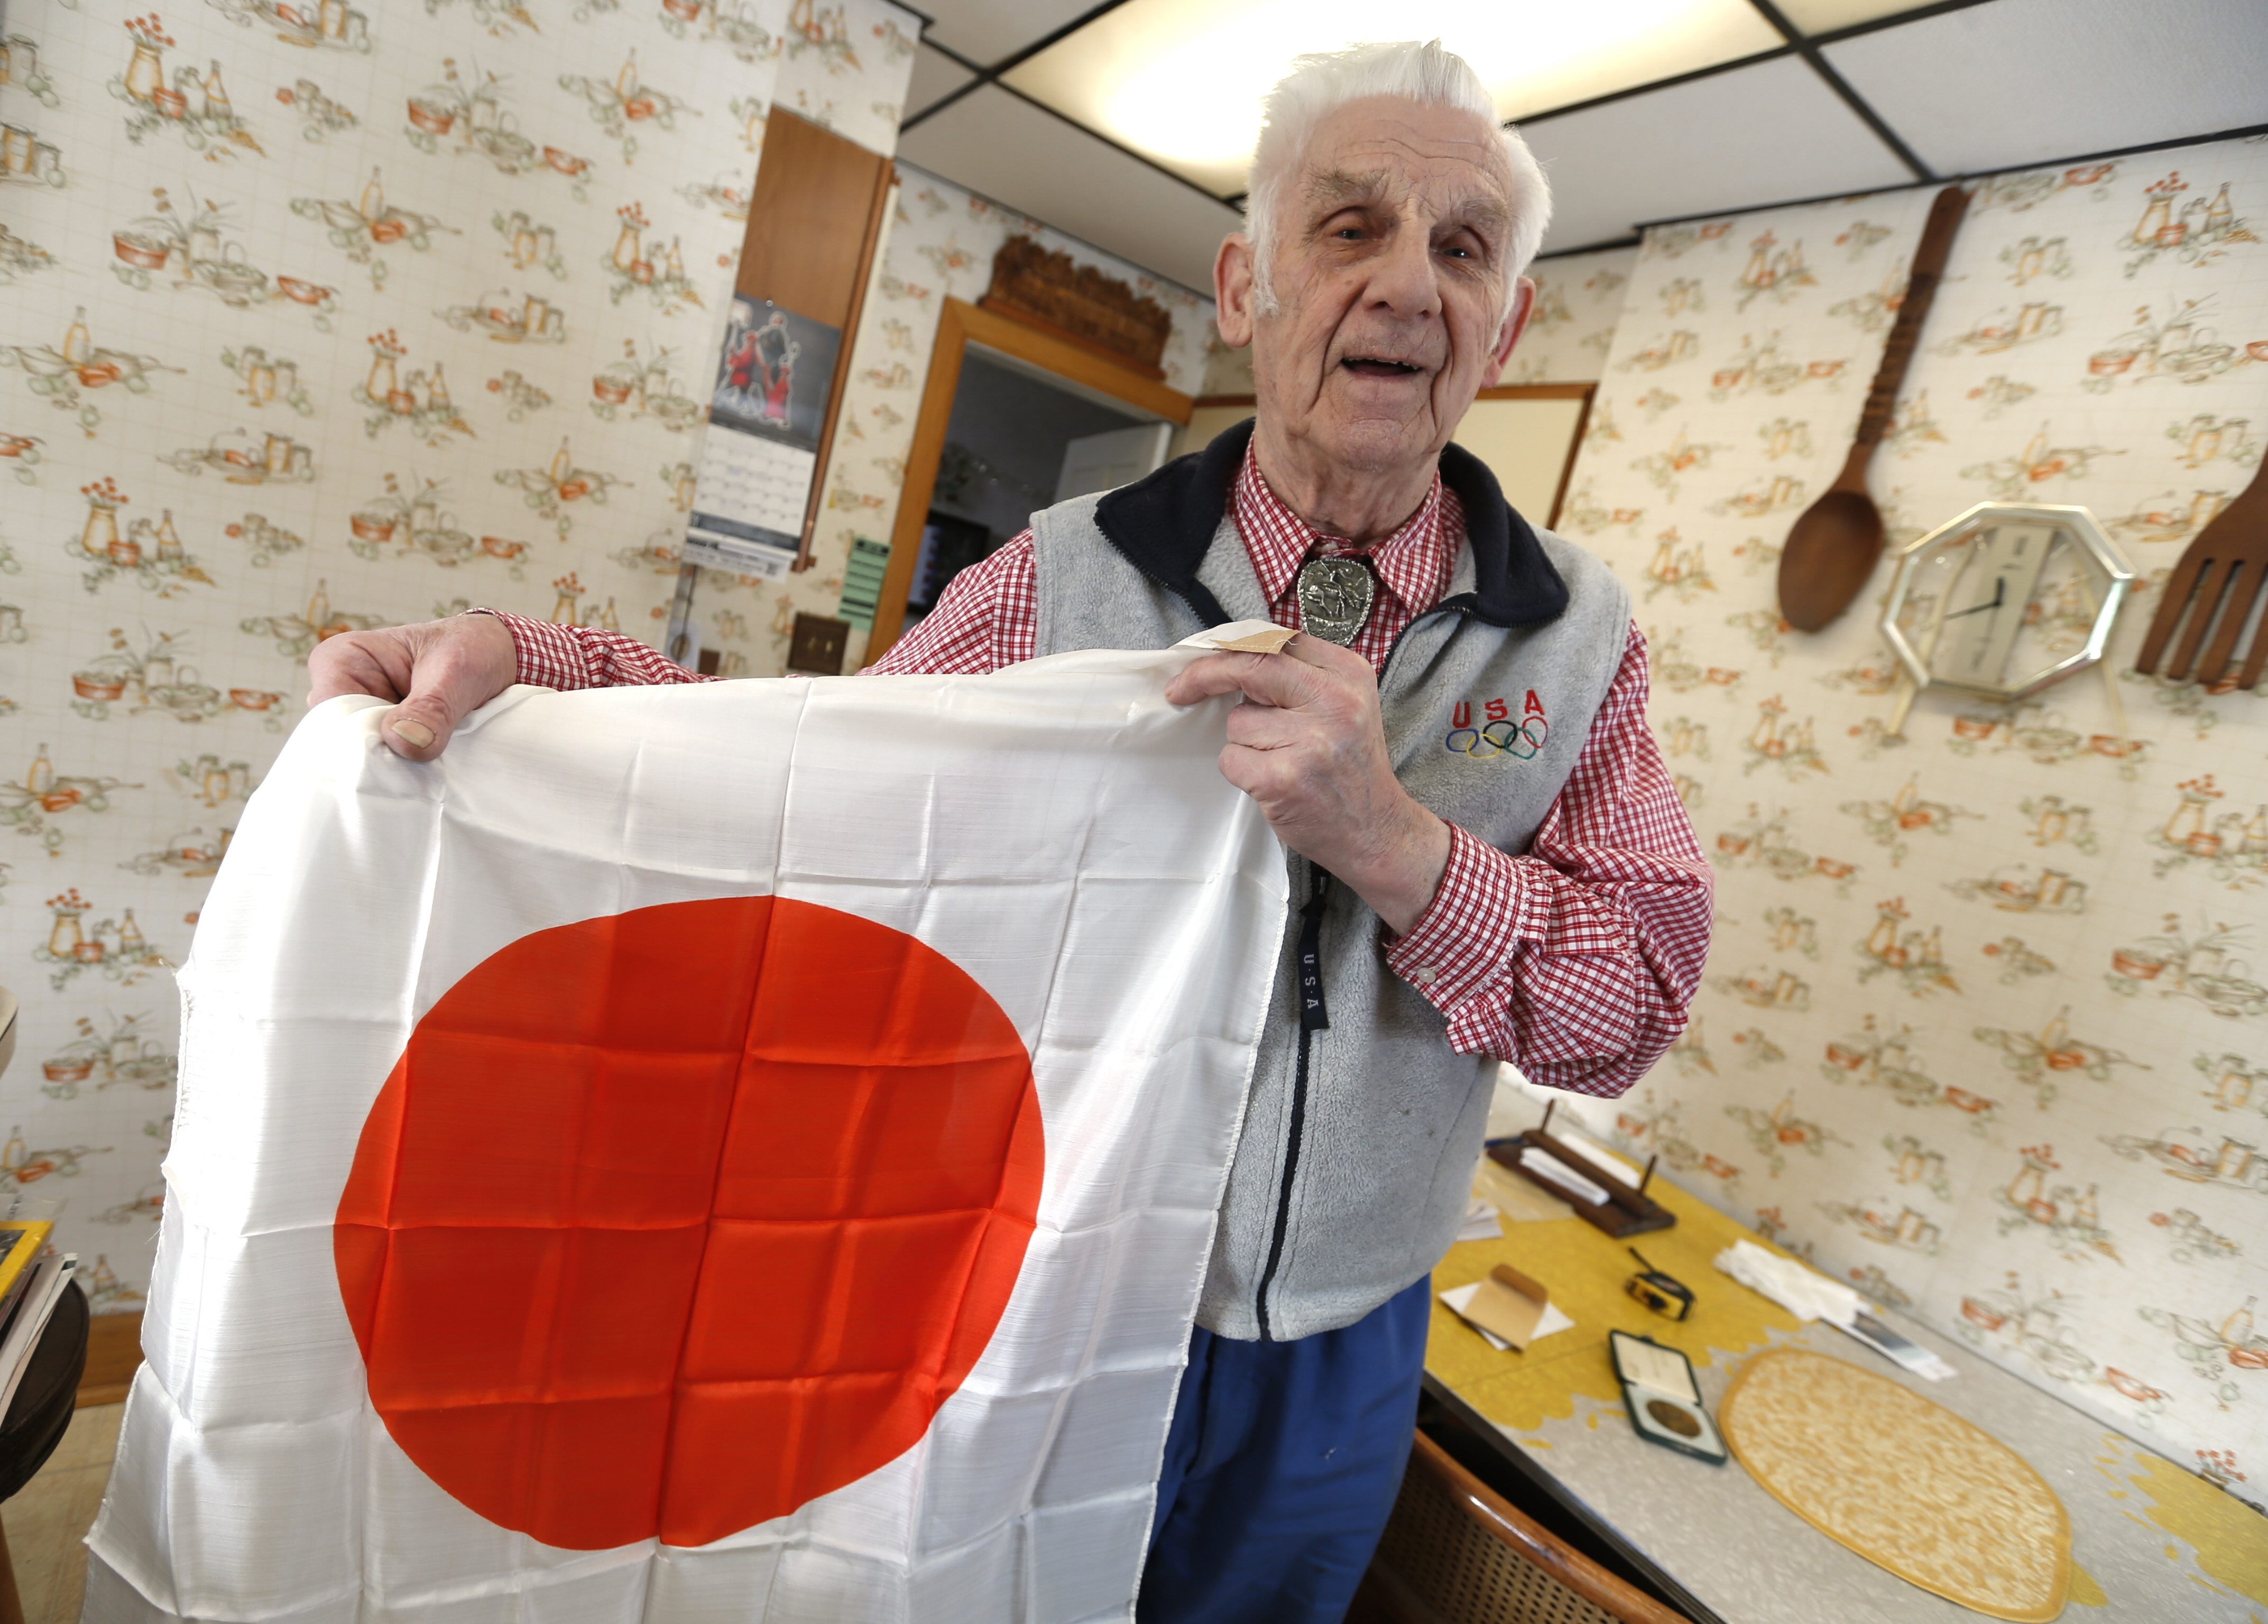 A Japanese flag is among Louis J. Lambert's mementos in his East Aurora home. He also recalls bartering ciga- rettes for a sword, which got lost, and a couple of rifles.